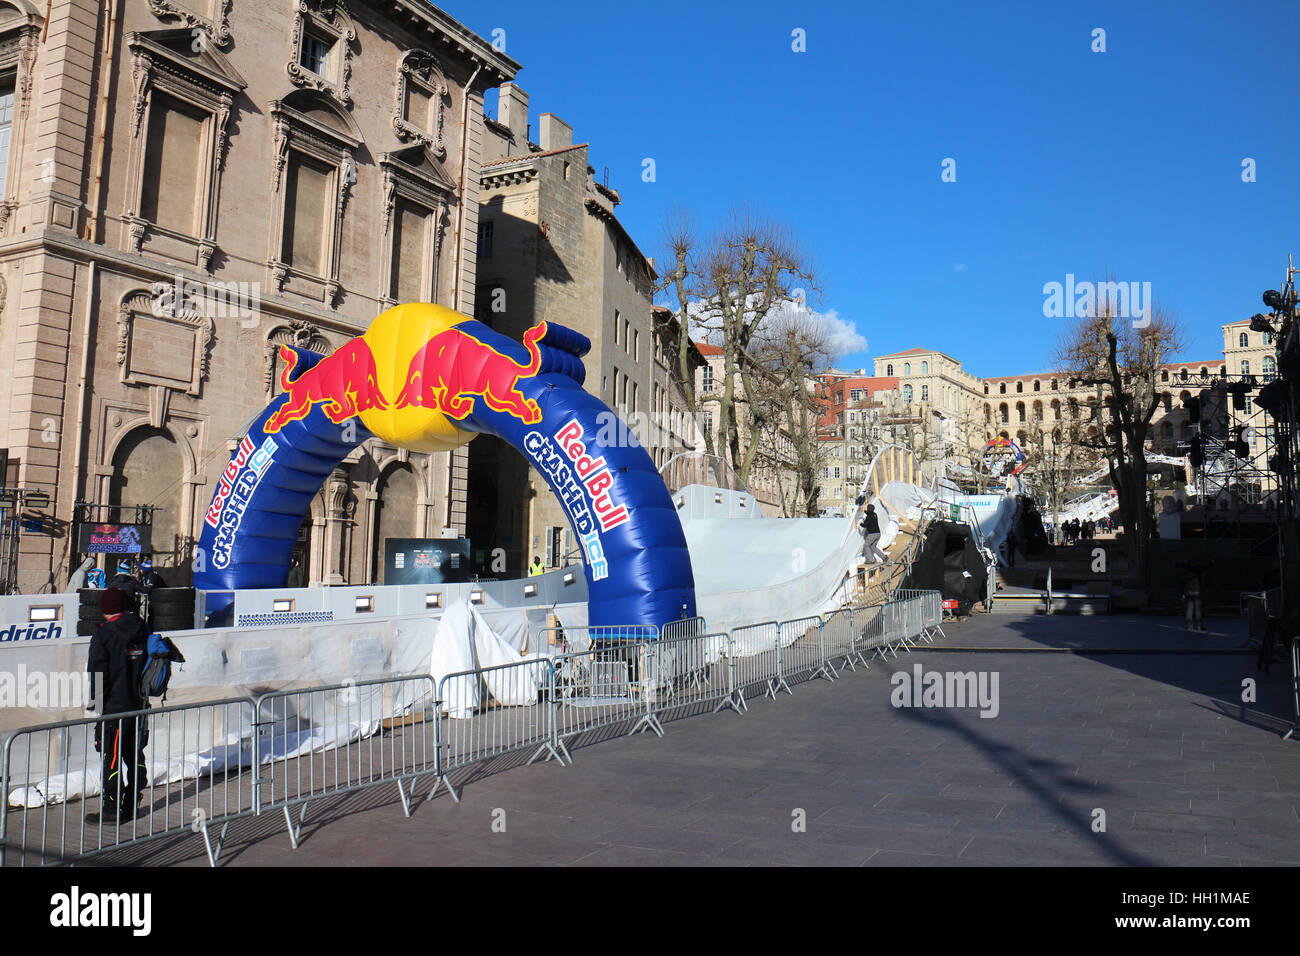 From January 14 to Januray 15,2017 Red Bull Crushed Ice the ice skate competition will take place in Marseilles - Stock Image